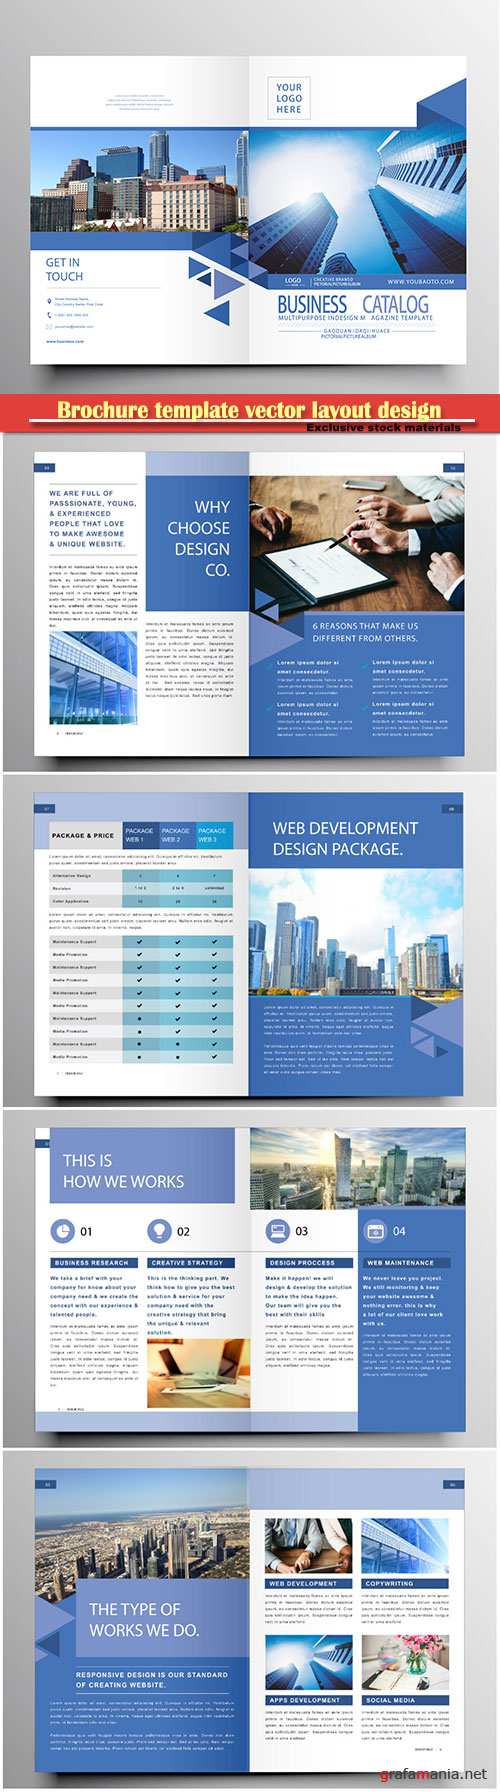 Brochure template vector layout design, corporate business annual report, magazine, flyer mockup # 184